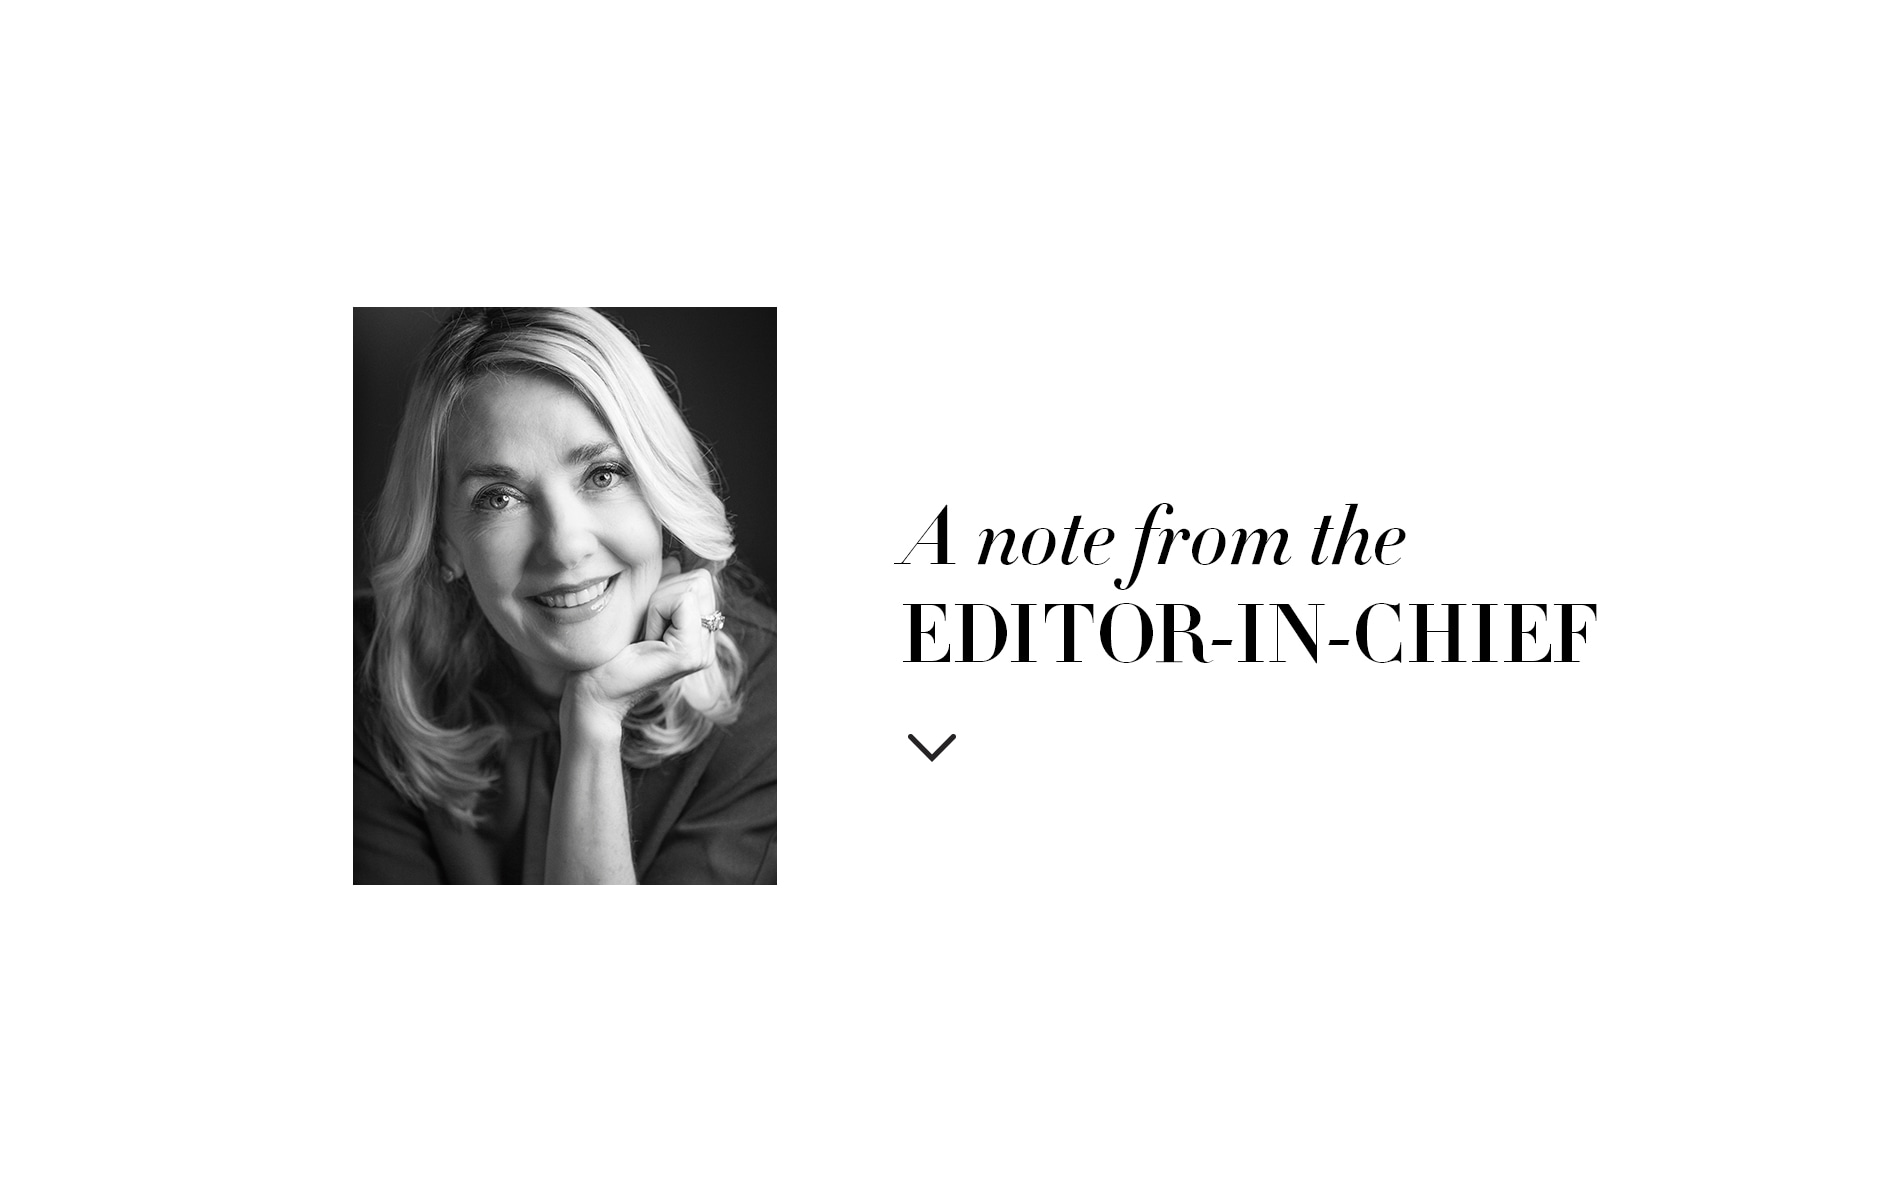 VIE Magazine editor-in-chief note Lisa Burwell